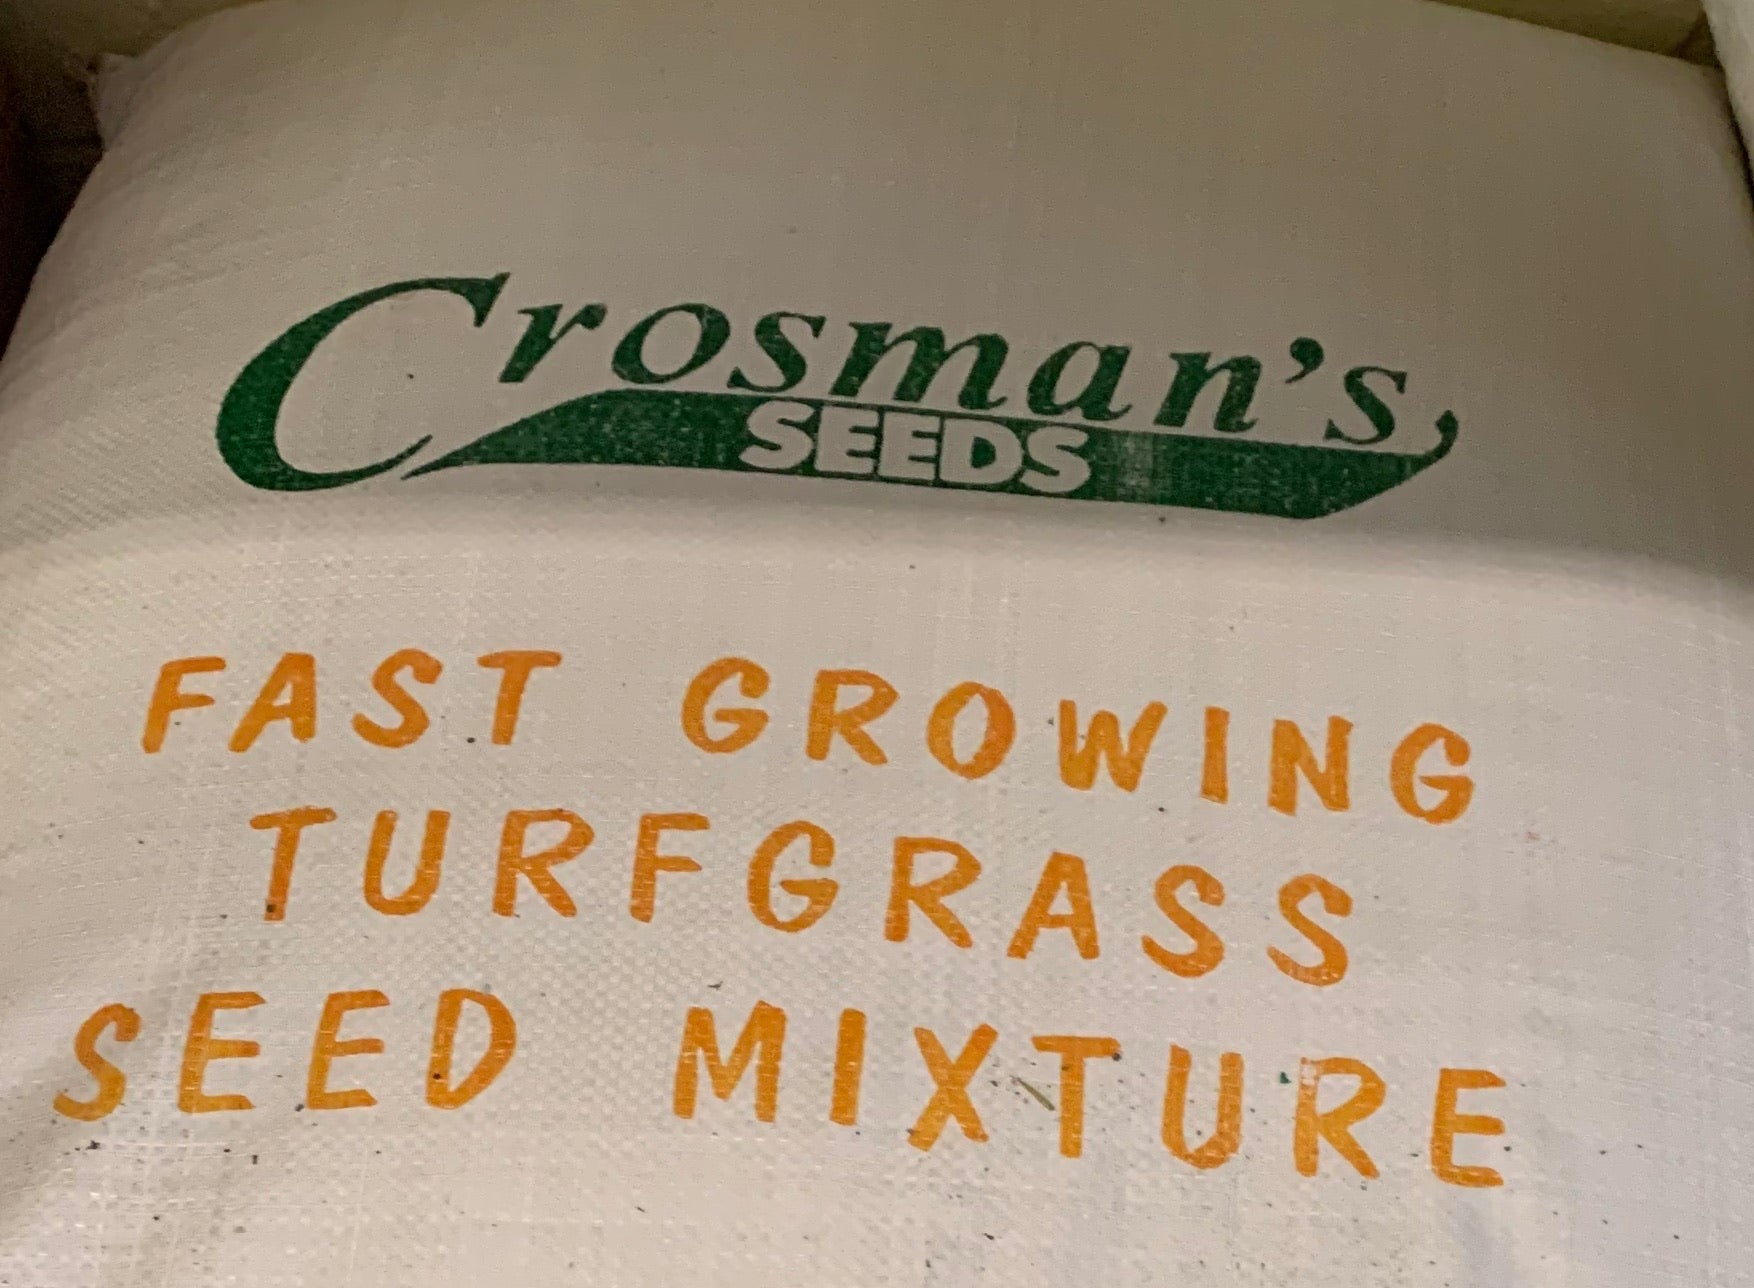 Grass Seed, Crossmans Fast Growing, 3 lbs